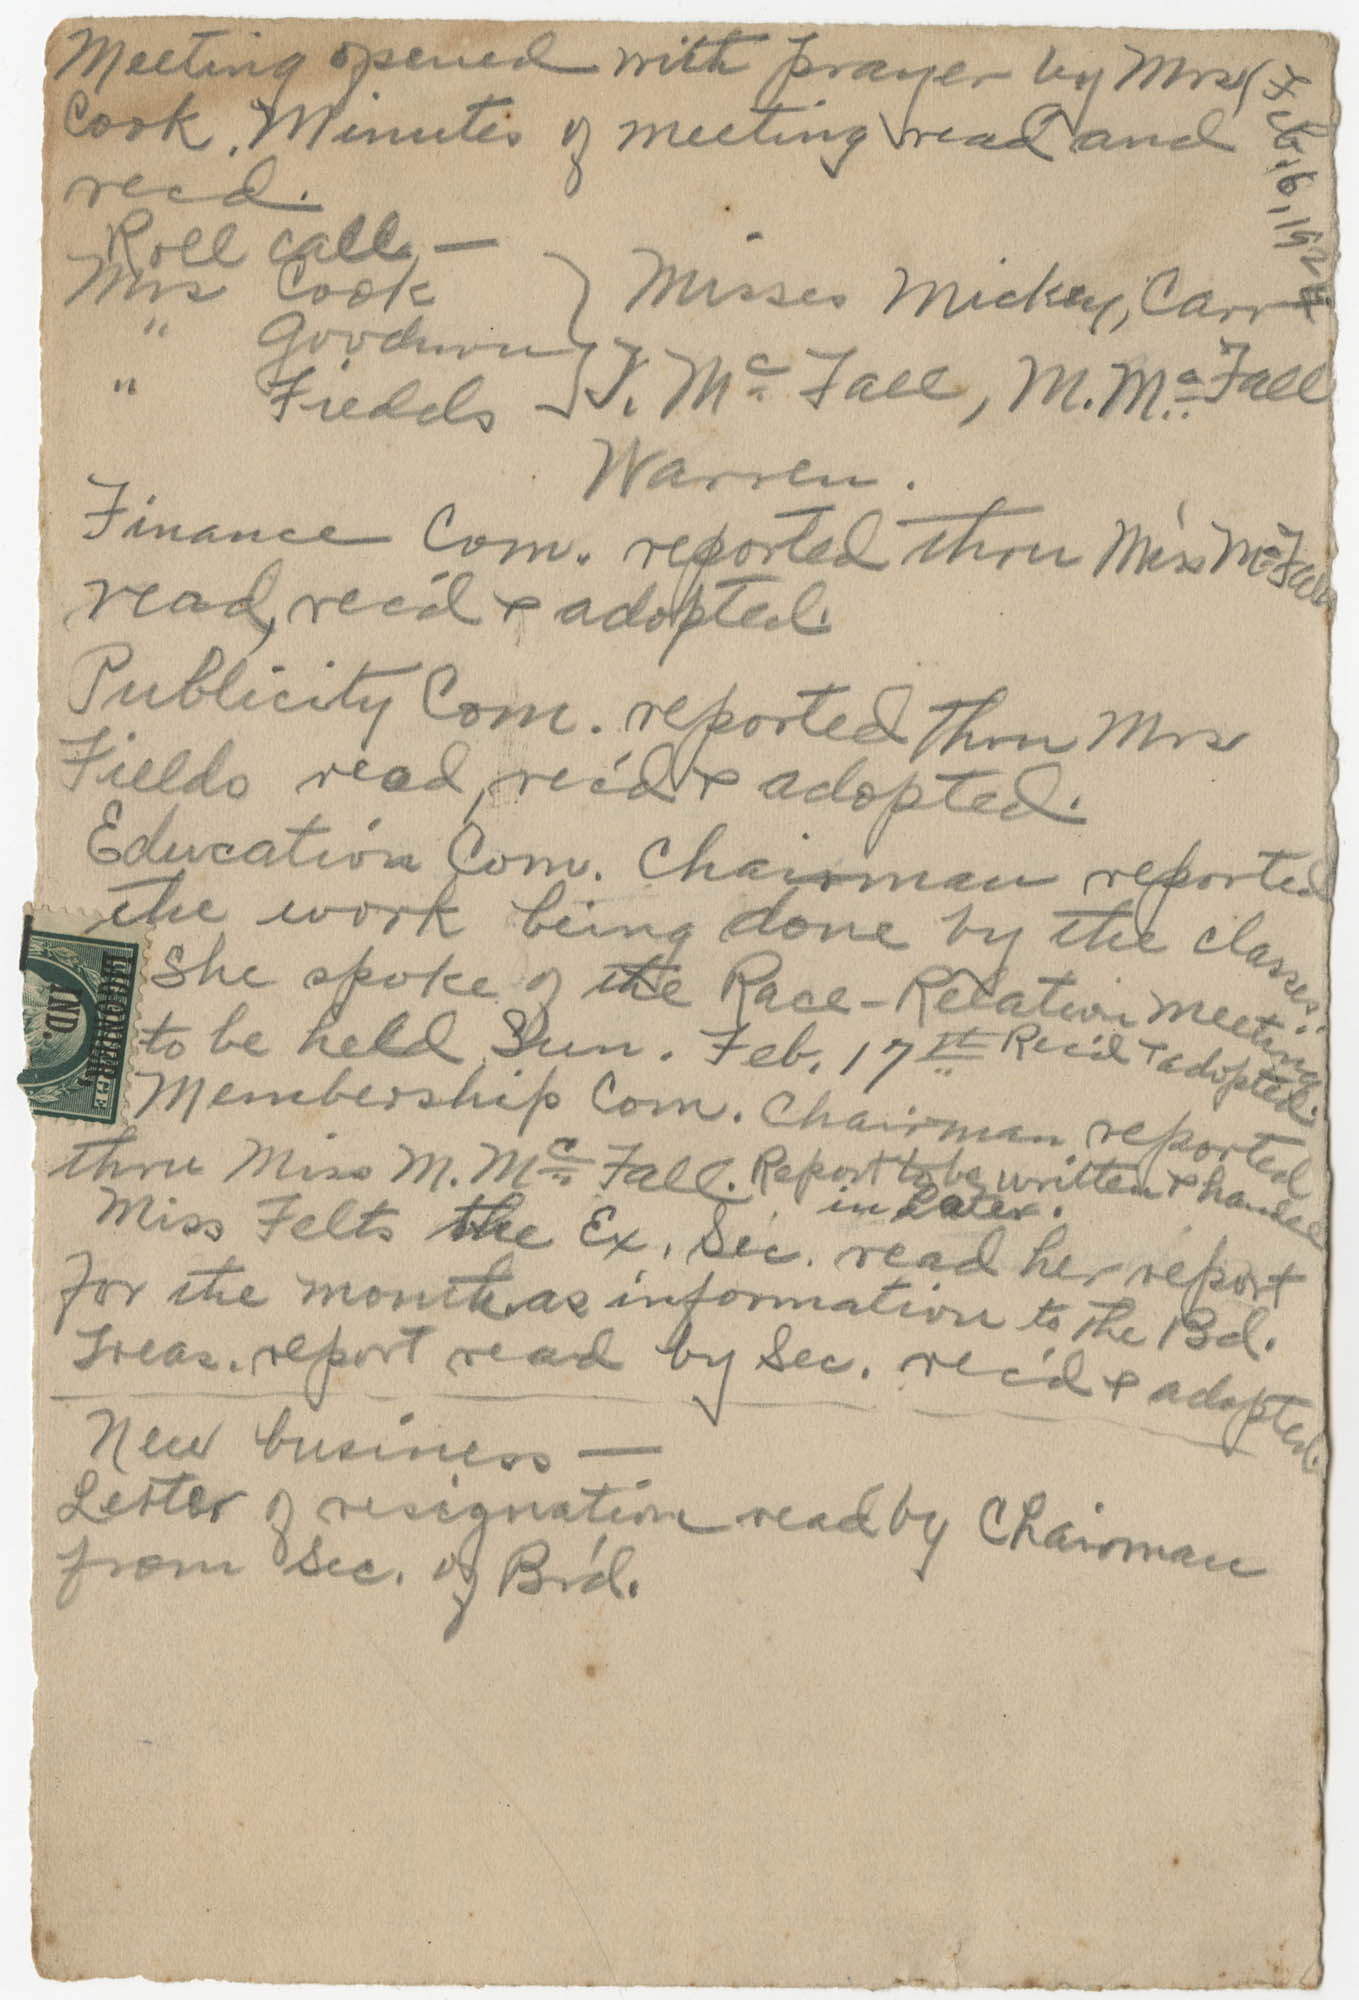 Minutes, Coming Street Y.W.C.A., February 6, 1924